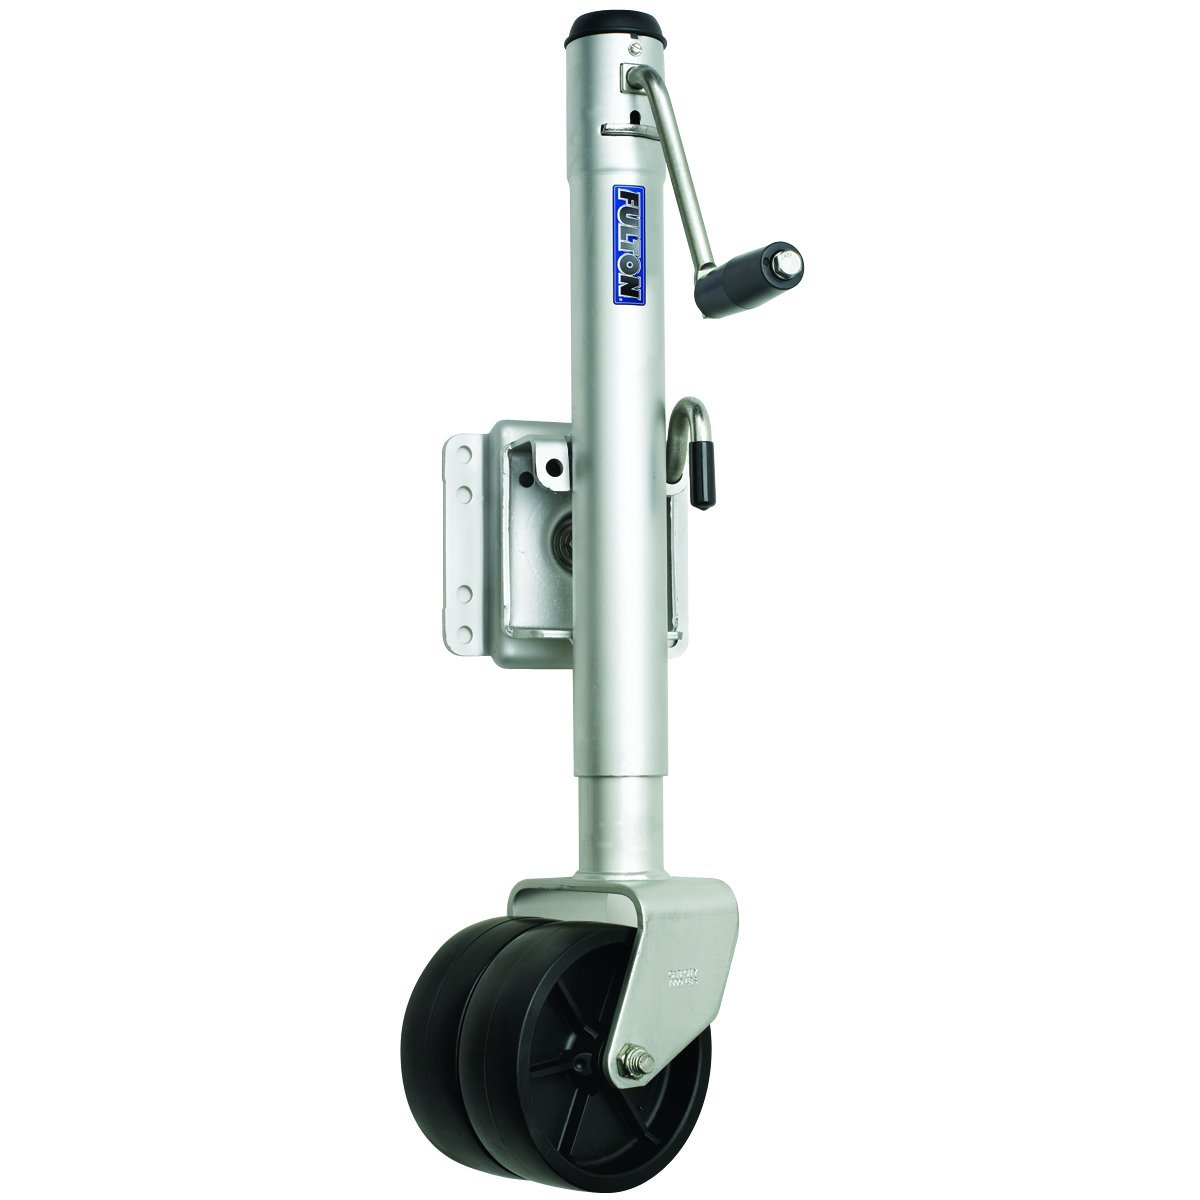 Fulton XPD15L 0101 Swivel Trailer Tongue Jack, Dual Wheel - 1500 Lbs. Capacity by Fulton